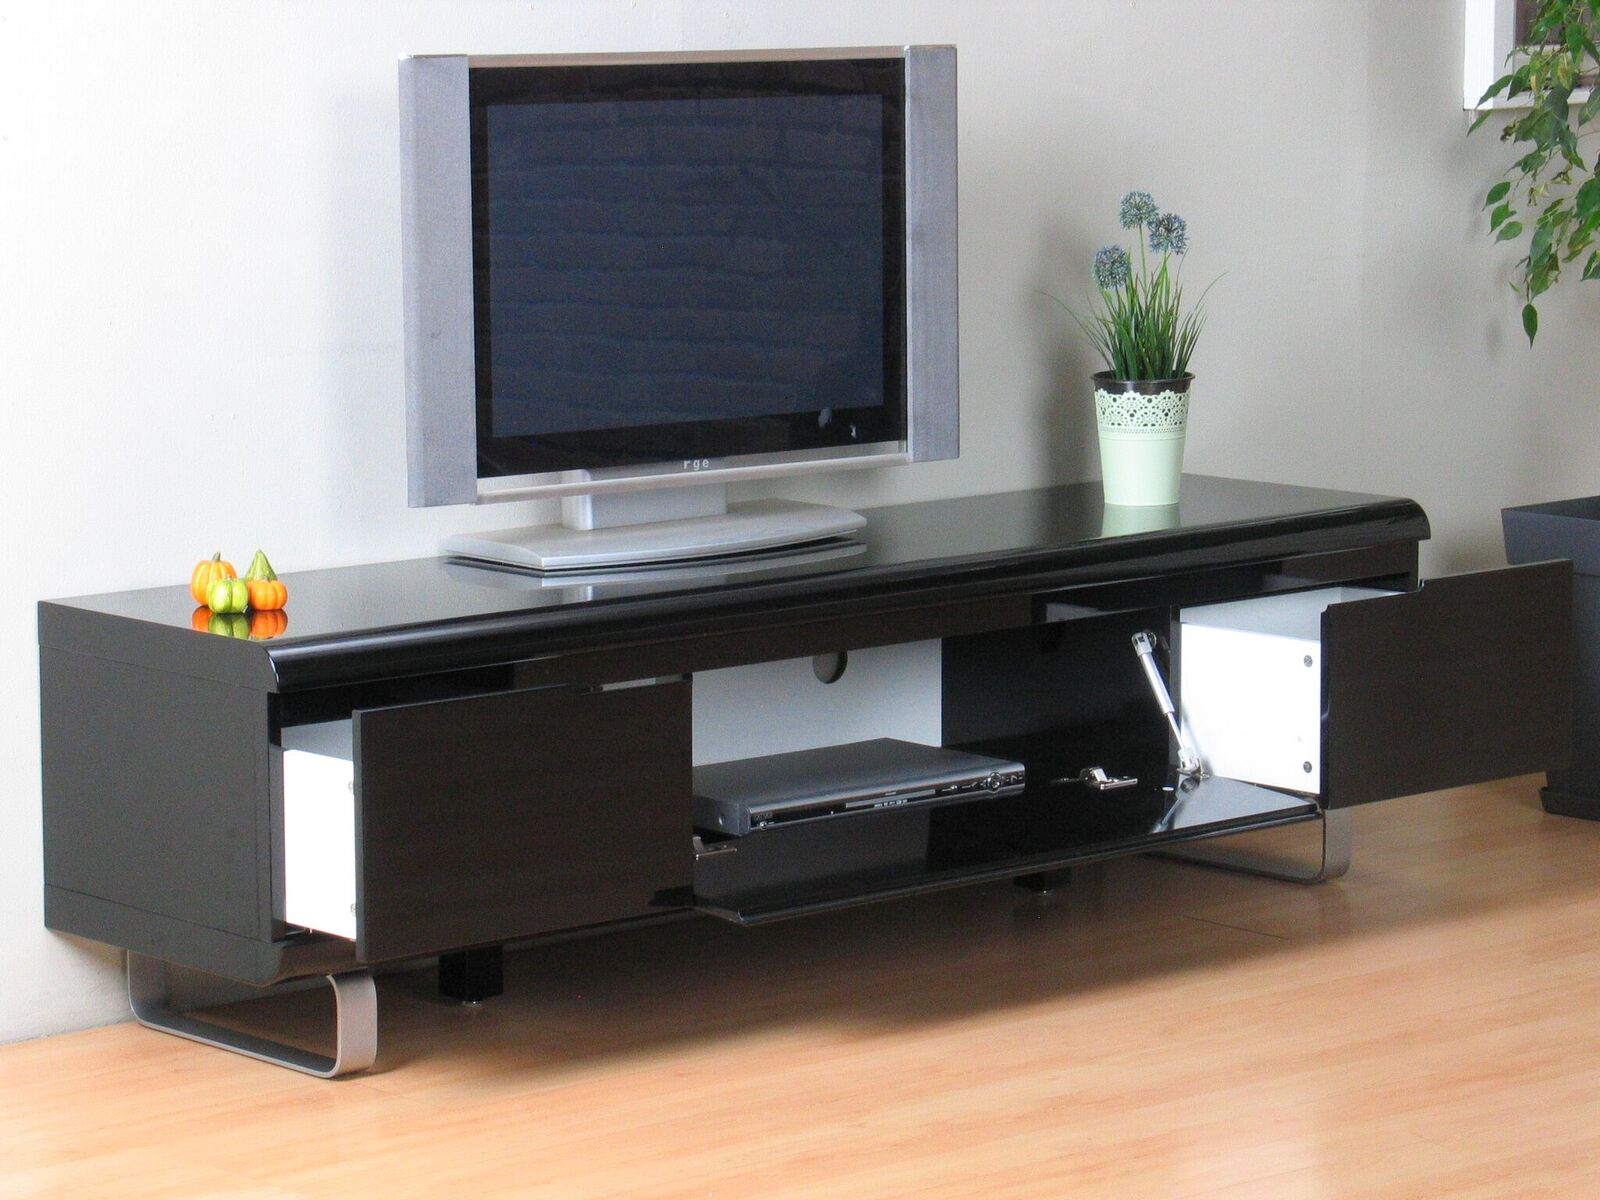 fernseher kommode tvkommode zacateca with fernseher. Black Bedroom Furniture Sets. Home Design Ideas